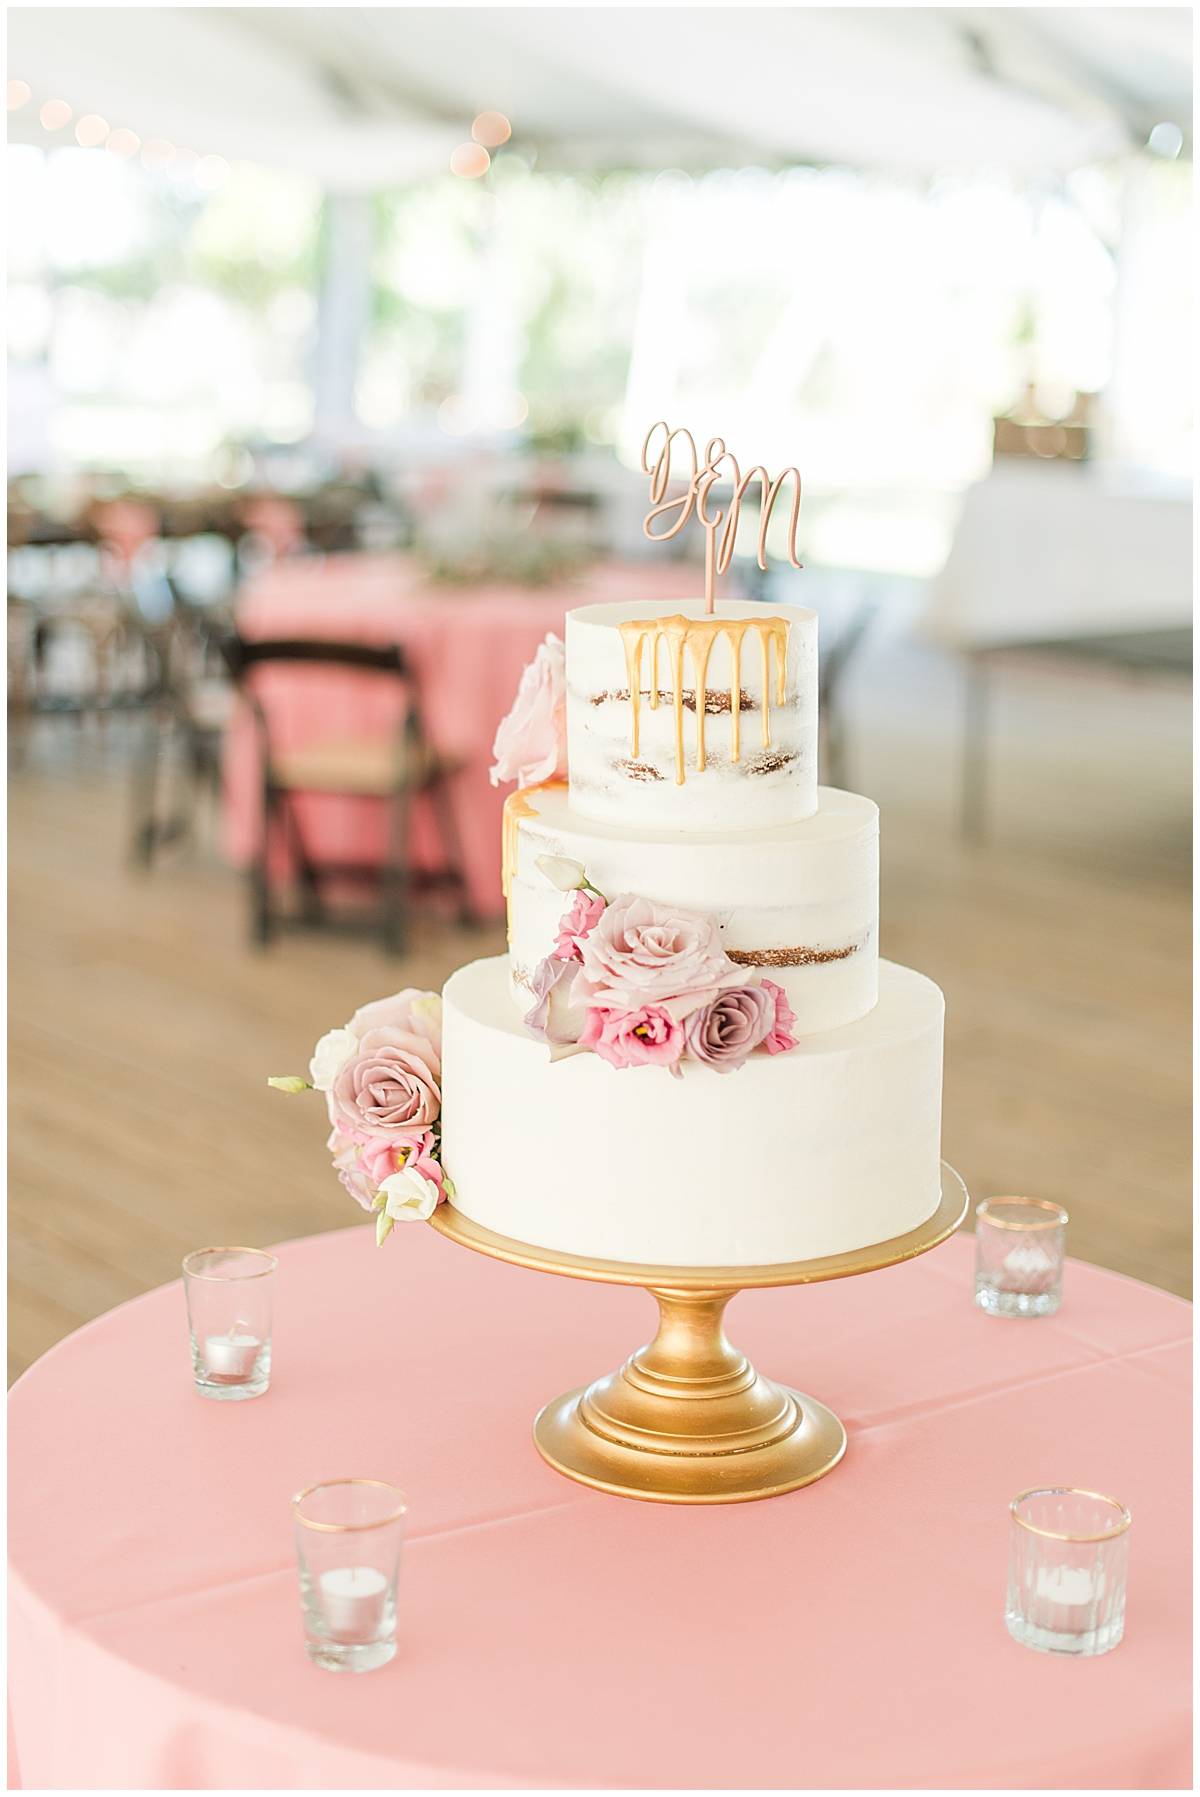 tiered wedding cake with gold drip icing